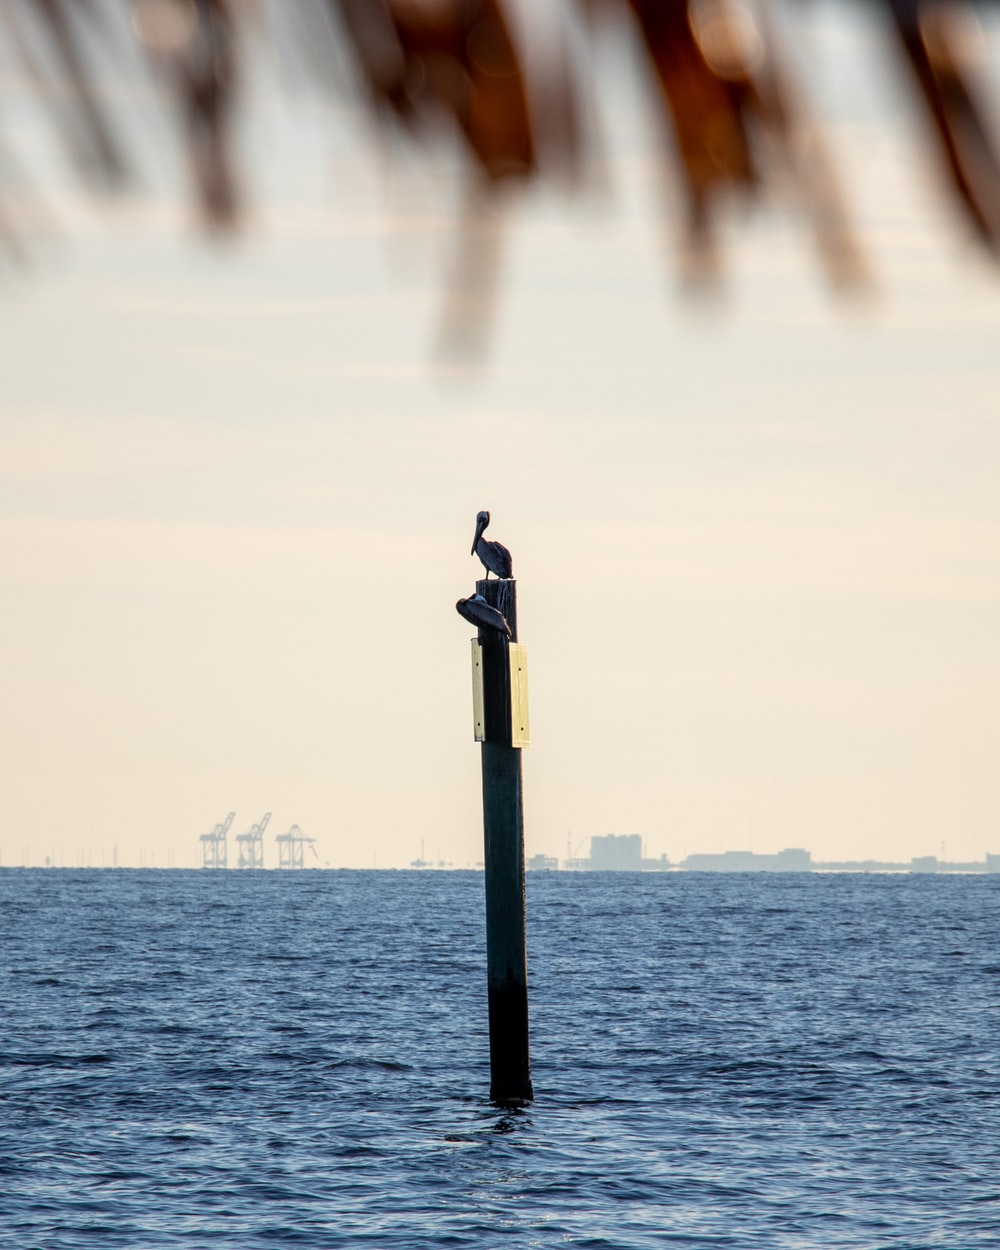 person standing on black post near body of water during daytime